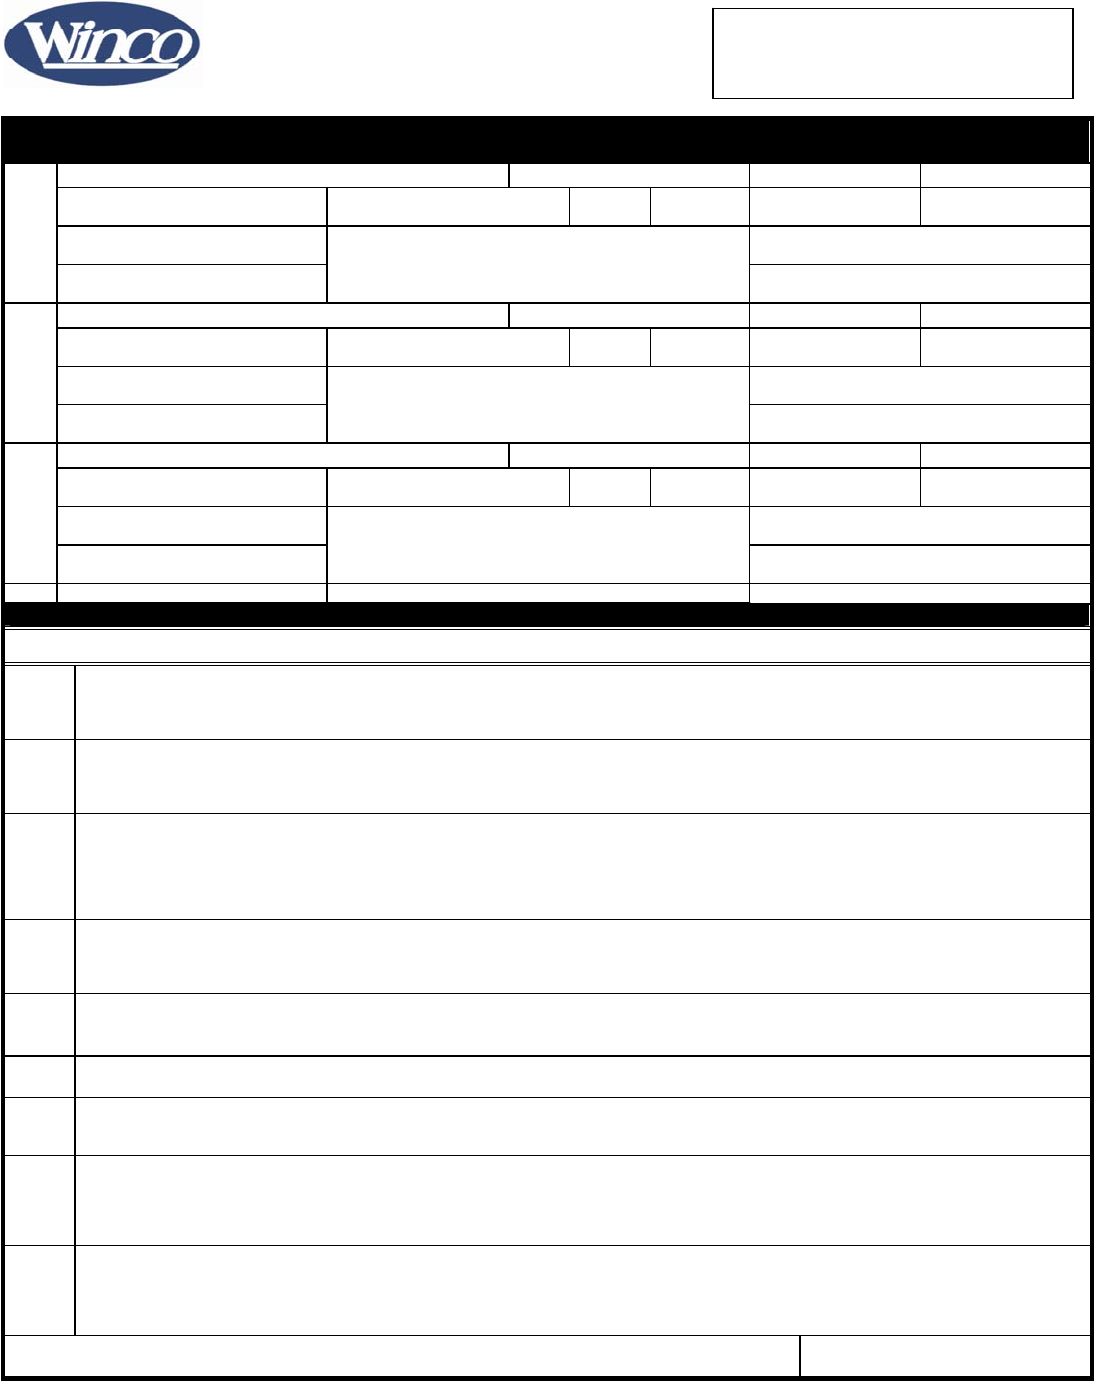 Free printable winco foods job application form page 2 falaconquin